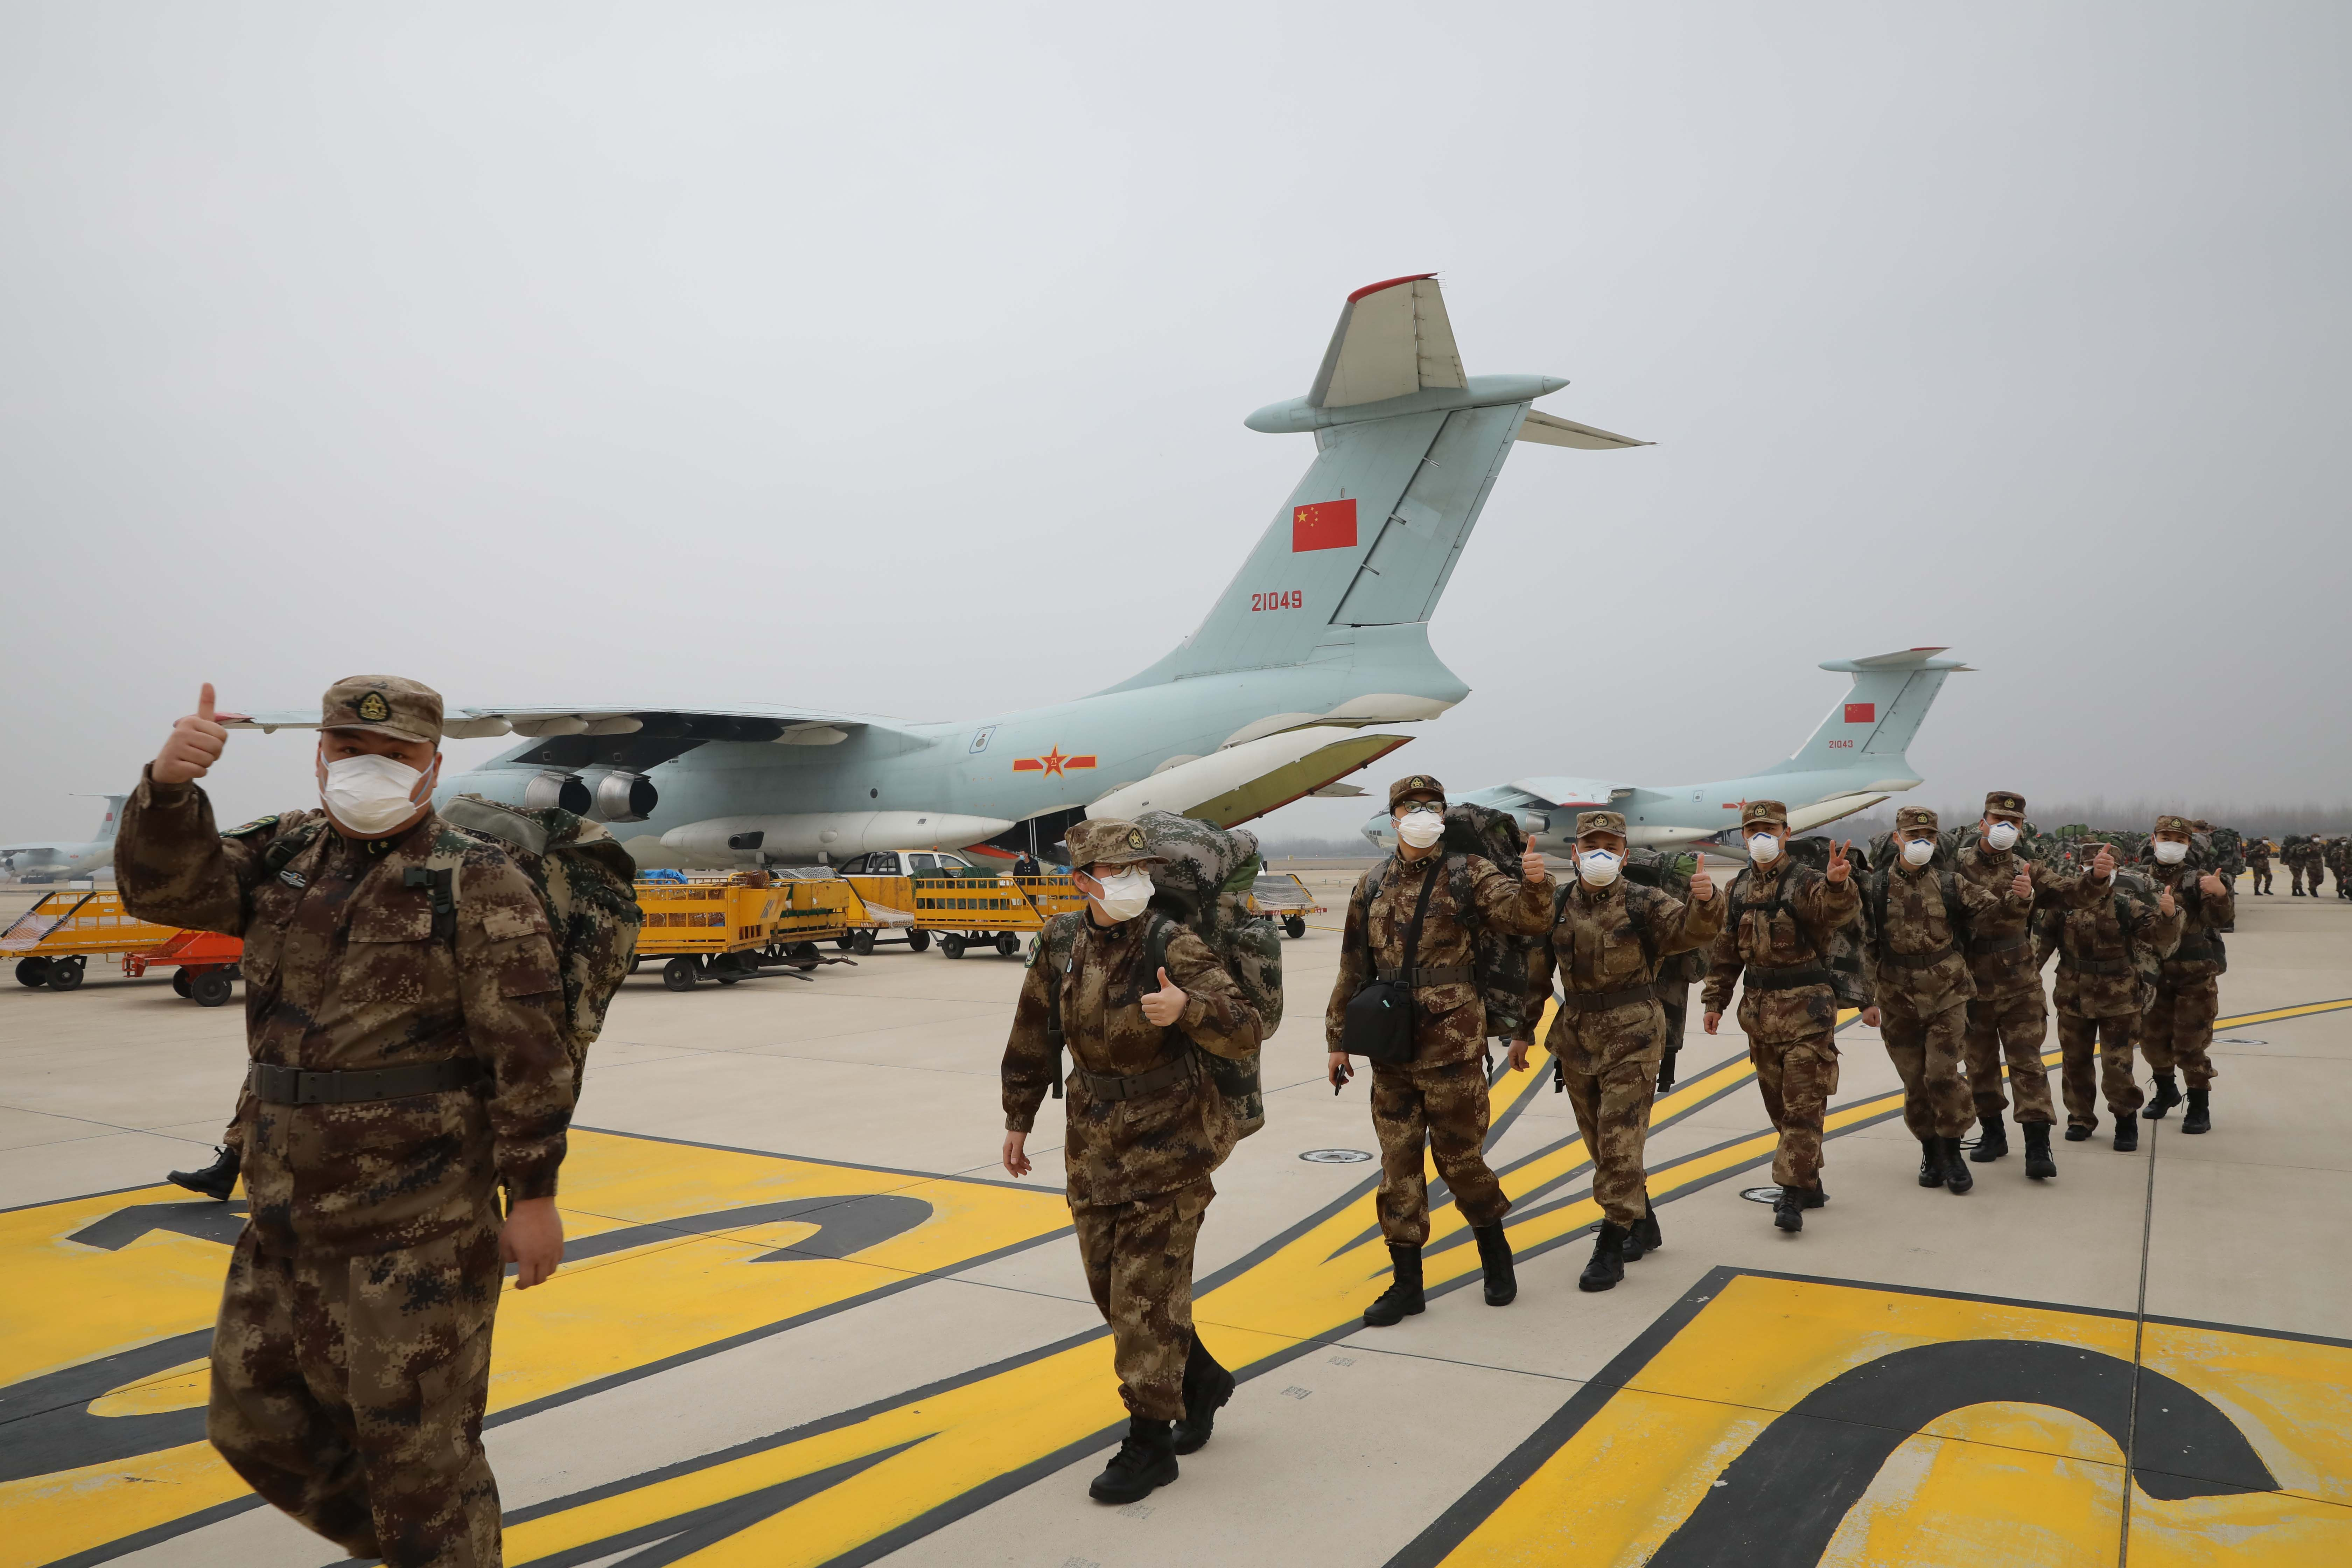 Military medical workers awarded for fighting COVID-19 in Wuhan